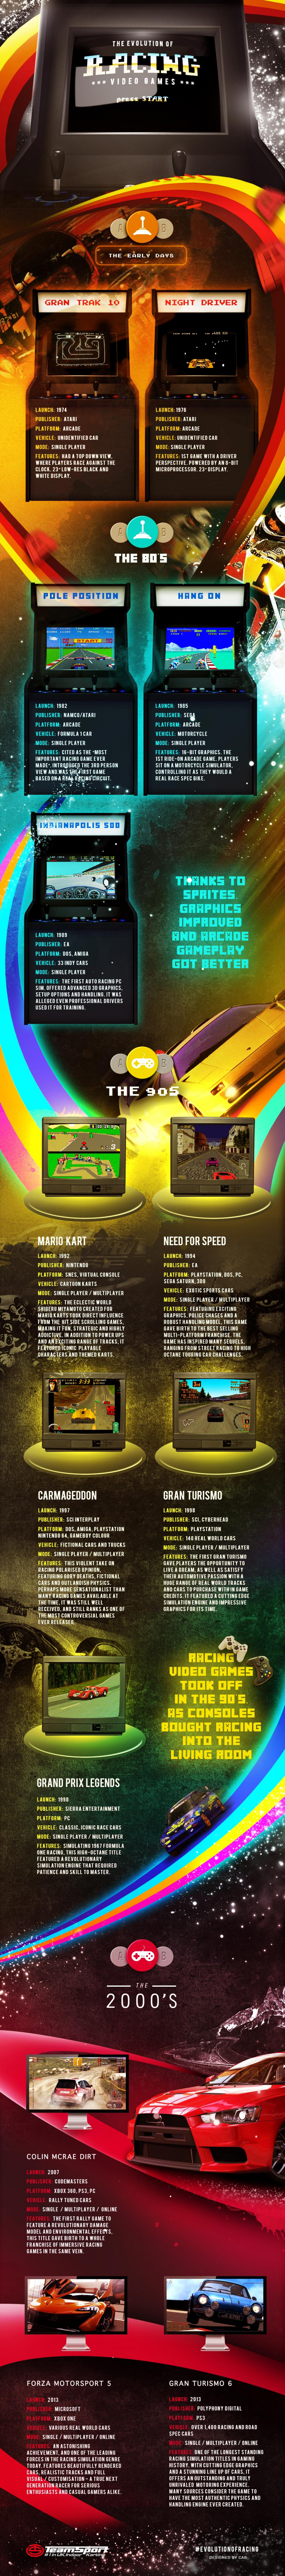 The Evolution of Racing Video Games Infographic